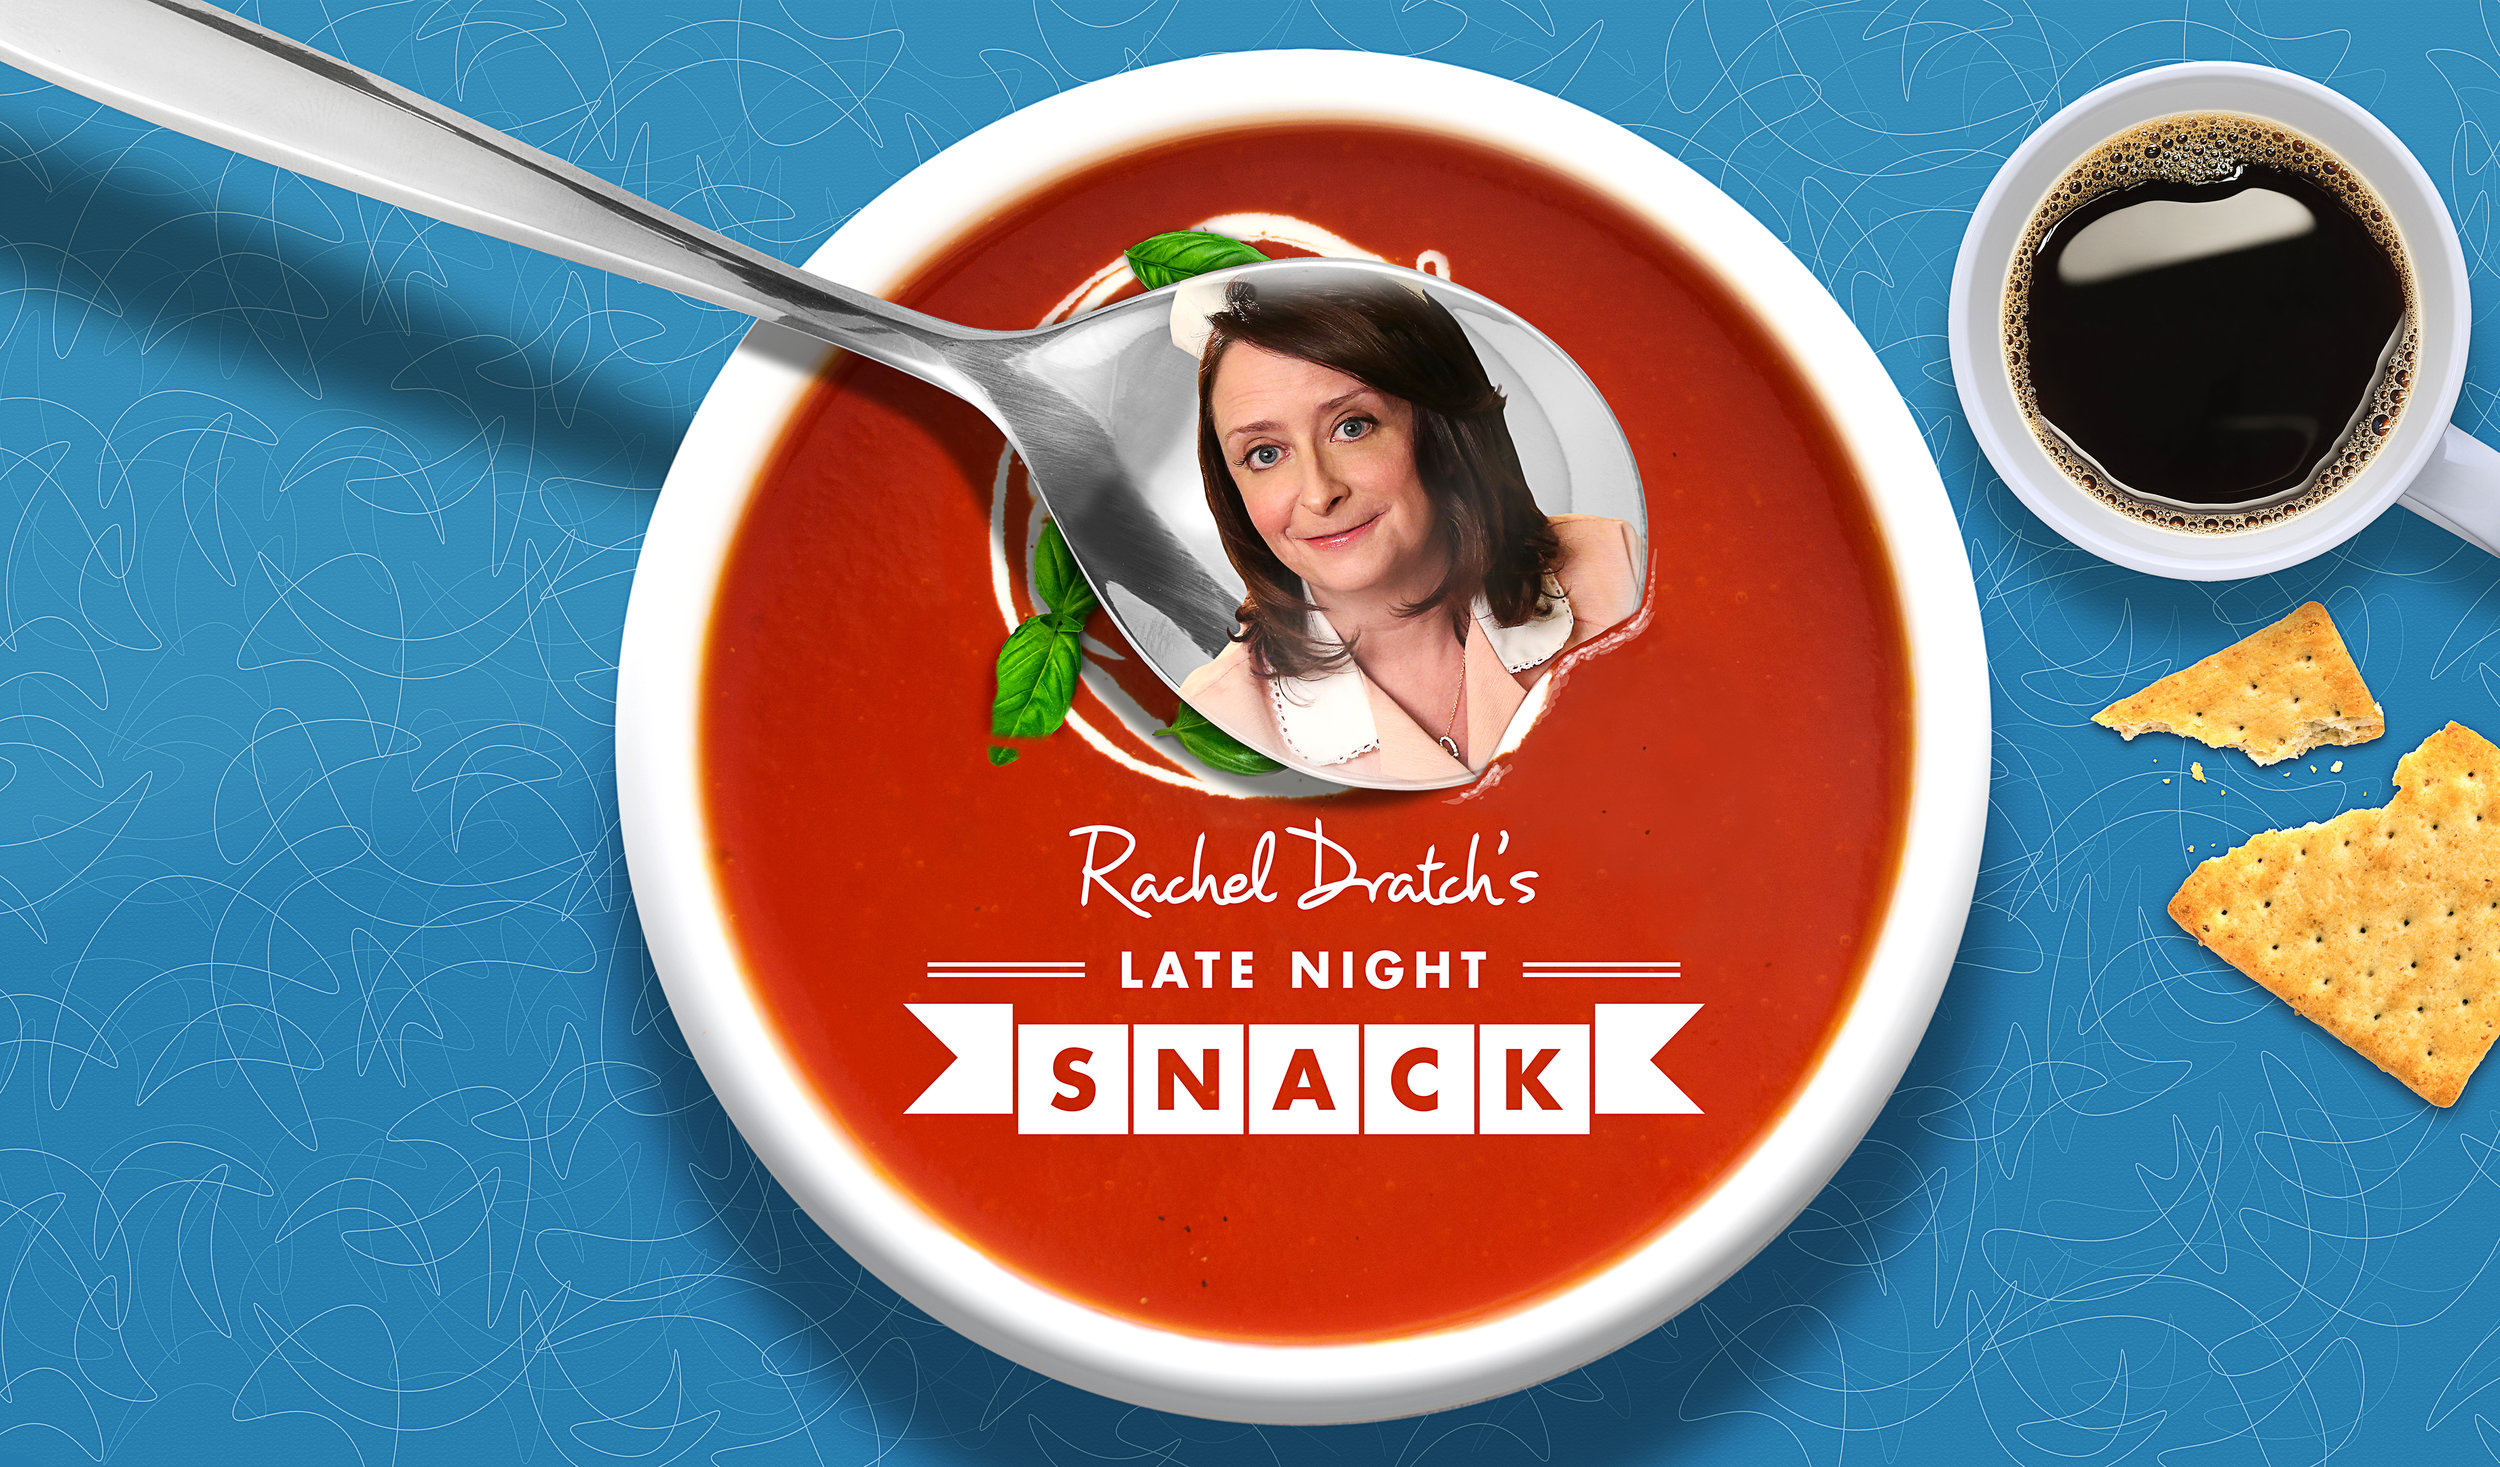 I updated the key art for Late Night Snack by creating a bowl of tomato soup, adding in the crackers and then changing the background color.